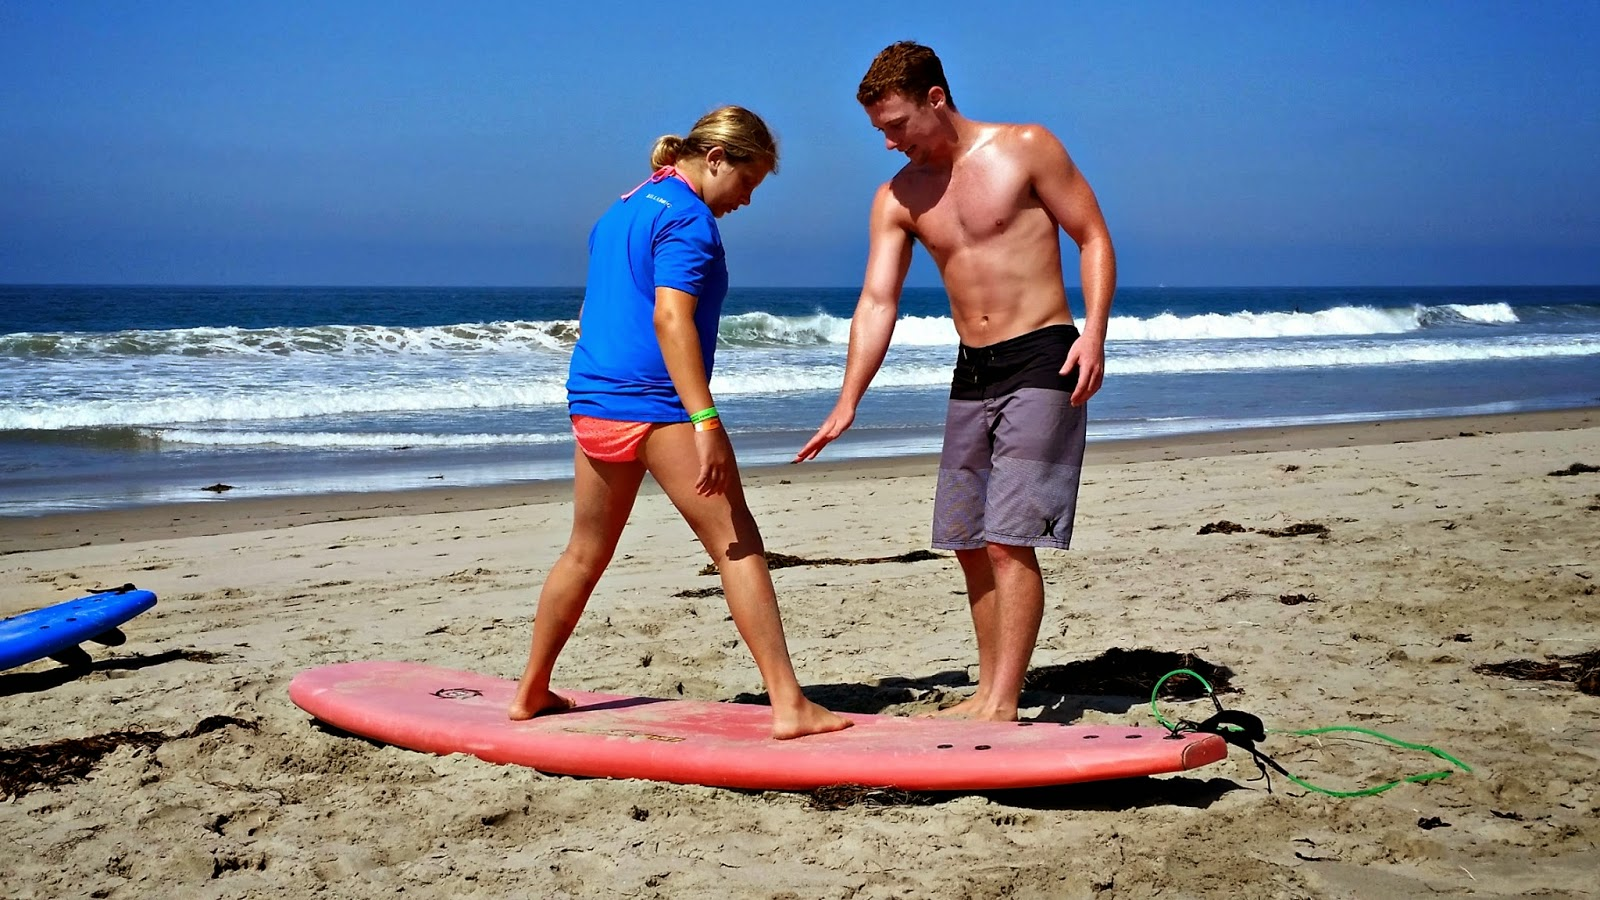 Camp counselor giving female camper a surfing lesson on the beach in Malibu